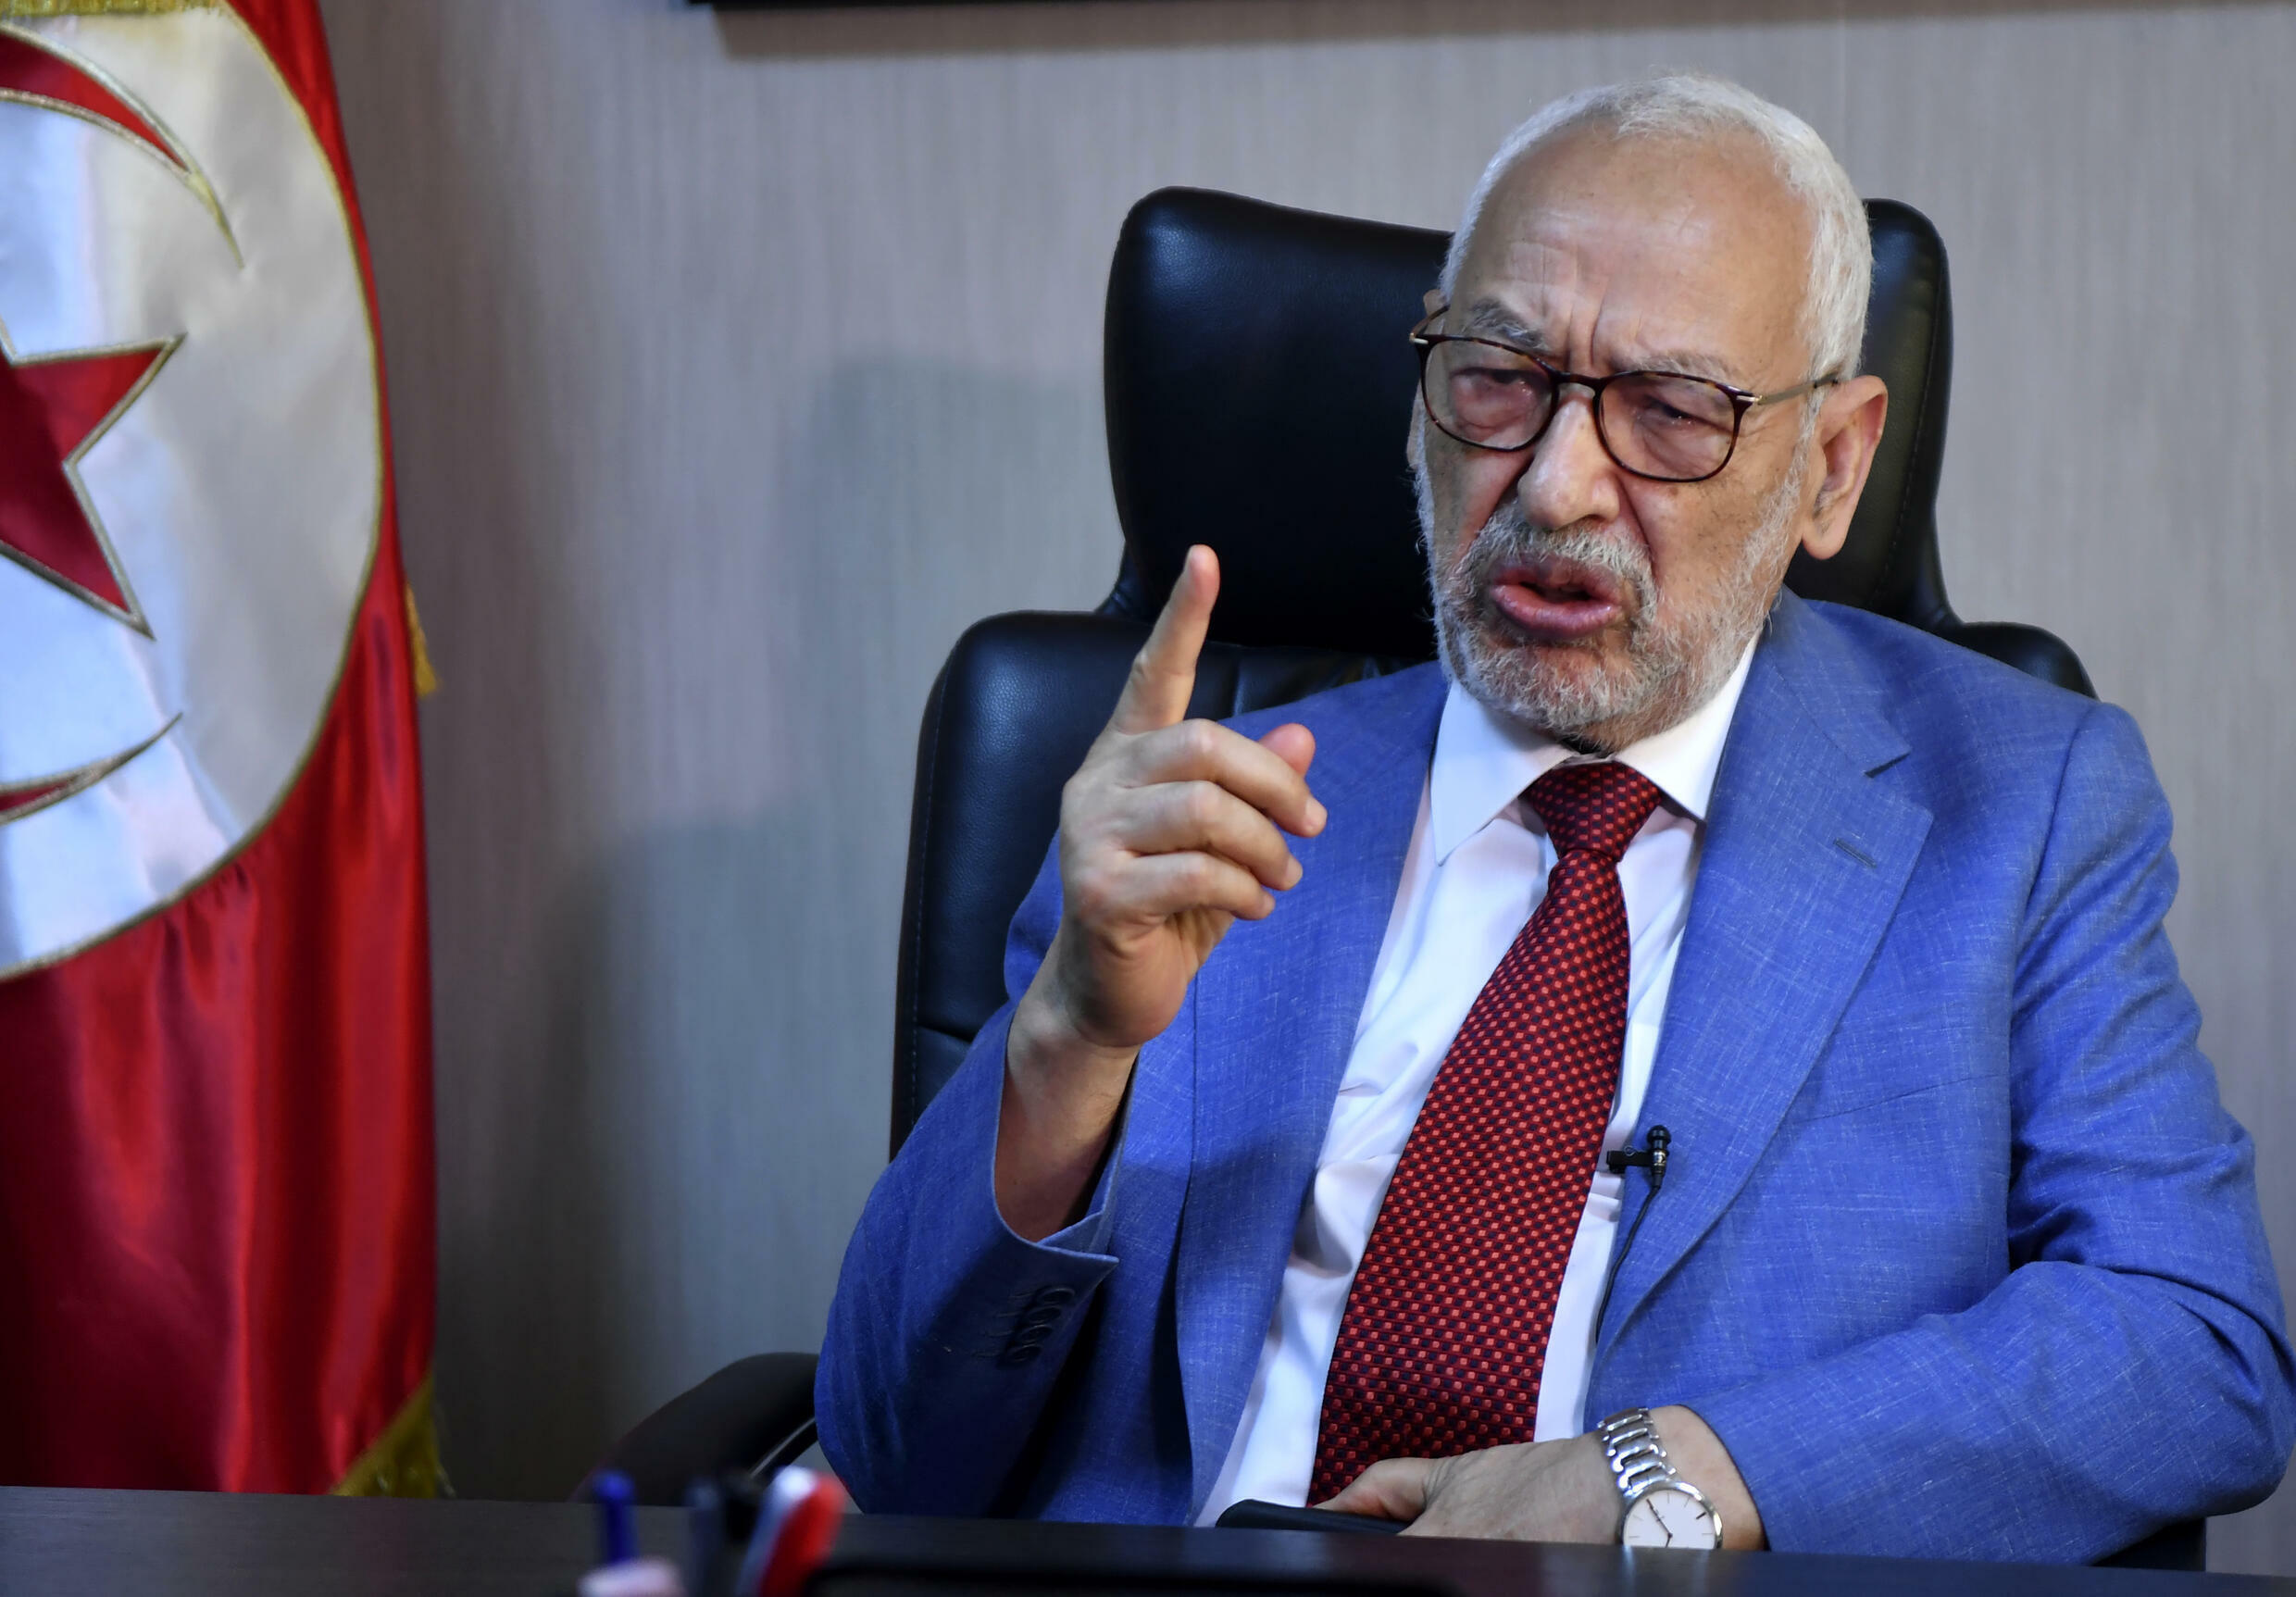 Tunisia's parliament speaker and and Ennahdha party leader Rached Ghannouchi gives an interview with AFP at his office in the capital Tunis on July 29, 2021